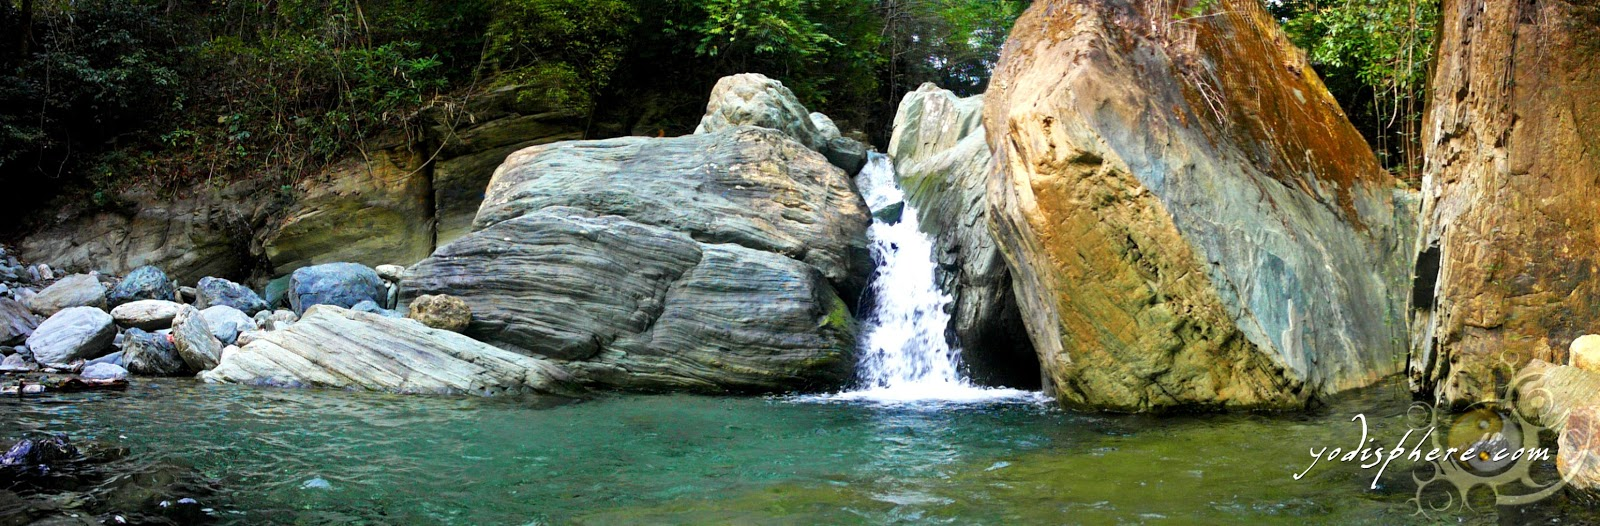 Panoramic View of Calawagan river mini falls 